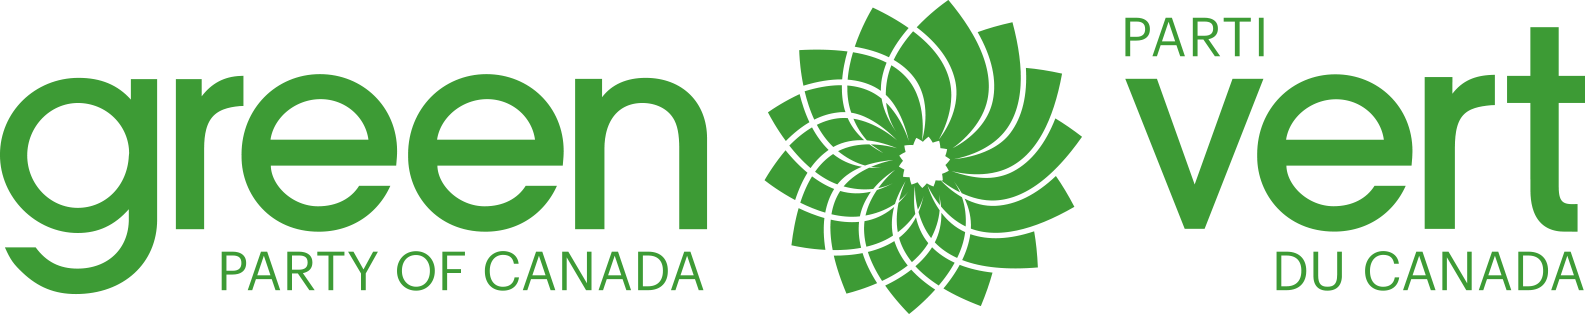 Green party logo png. Logos graphics official